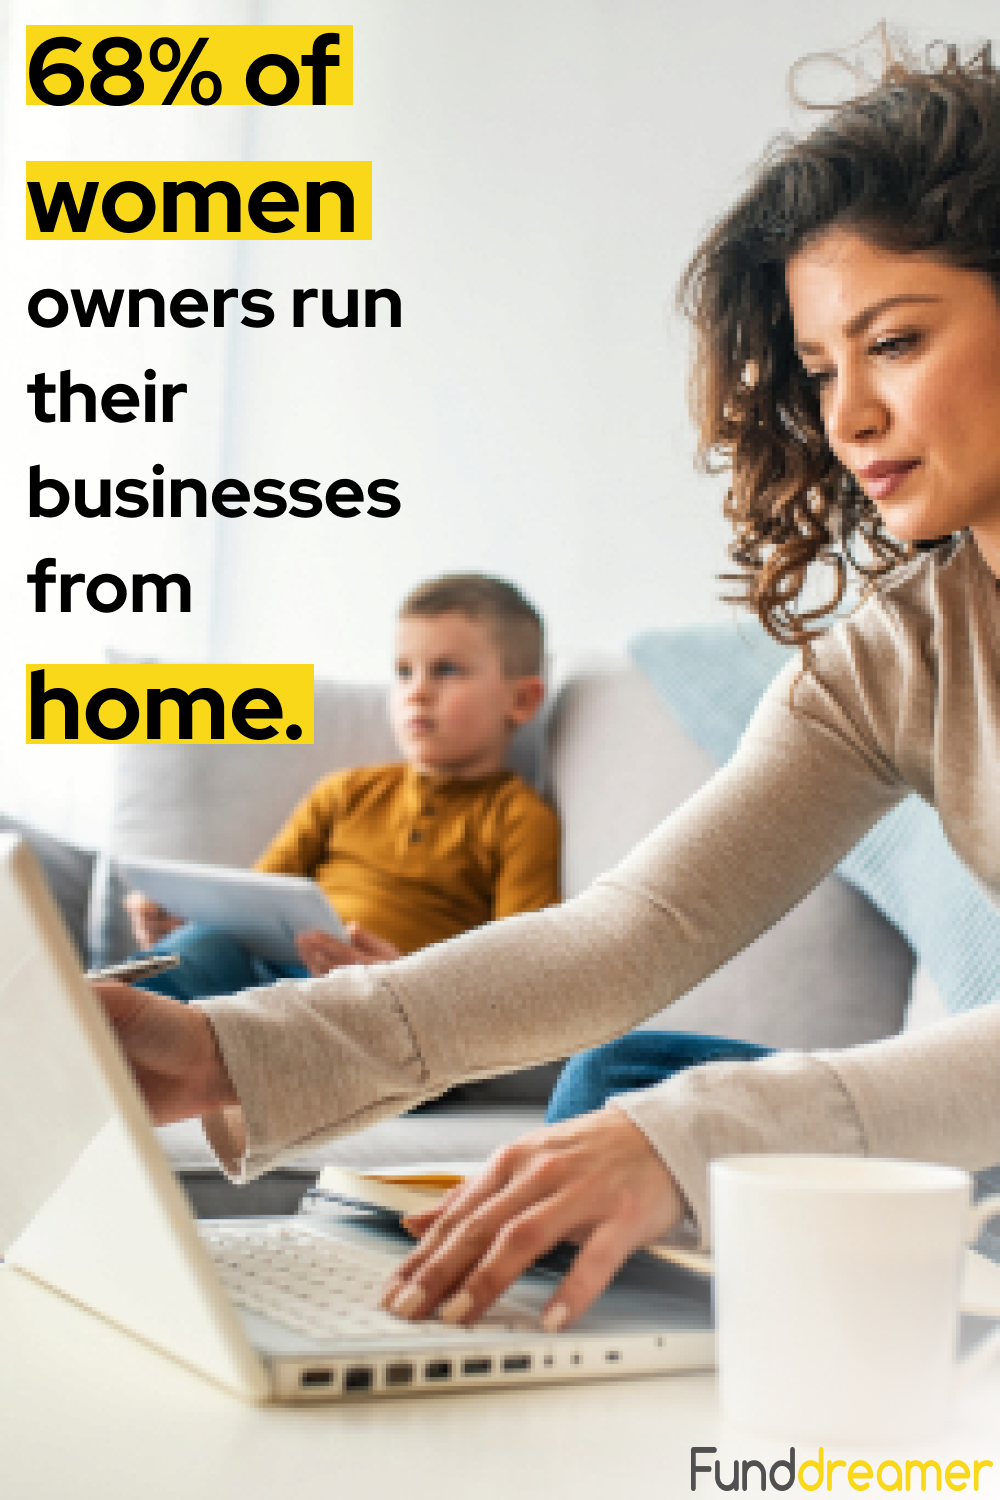 Wheather it's due to insufficient funds or to a lack of employees, 68% of women owners work from home.  #SiliconValley #crowdfunding #freedom #success #entrepreneurship #Entrepreneurs #FemaleEntrepreneur #entrepreneurmindset #Youngentrepreneurs #socialentrepreneur #entrepreneurslife #womanentrepreneur #EntrepreneurTips #VentureCapital #dreambig #dreamsdocometrue #girlboss